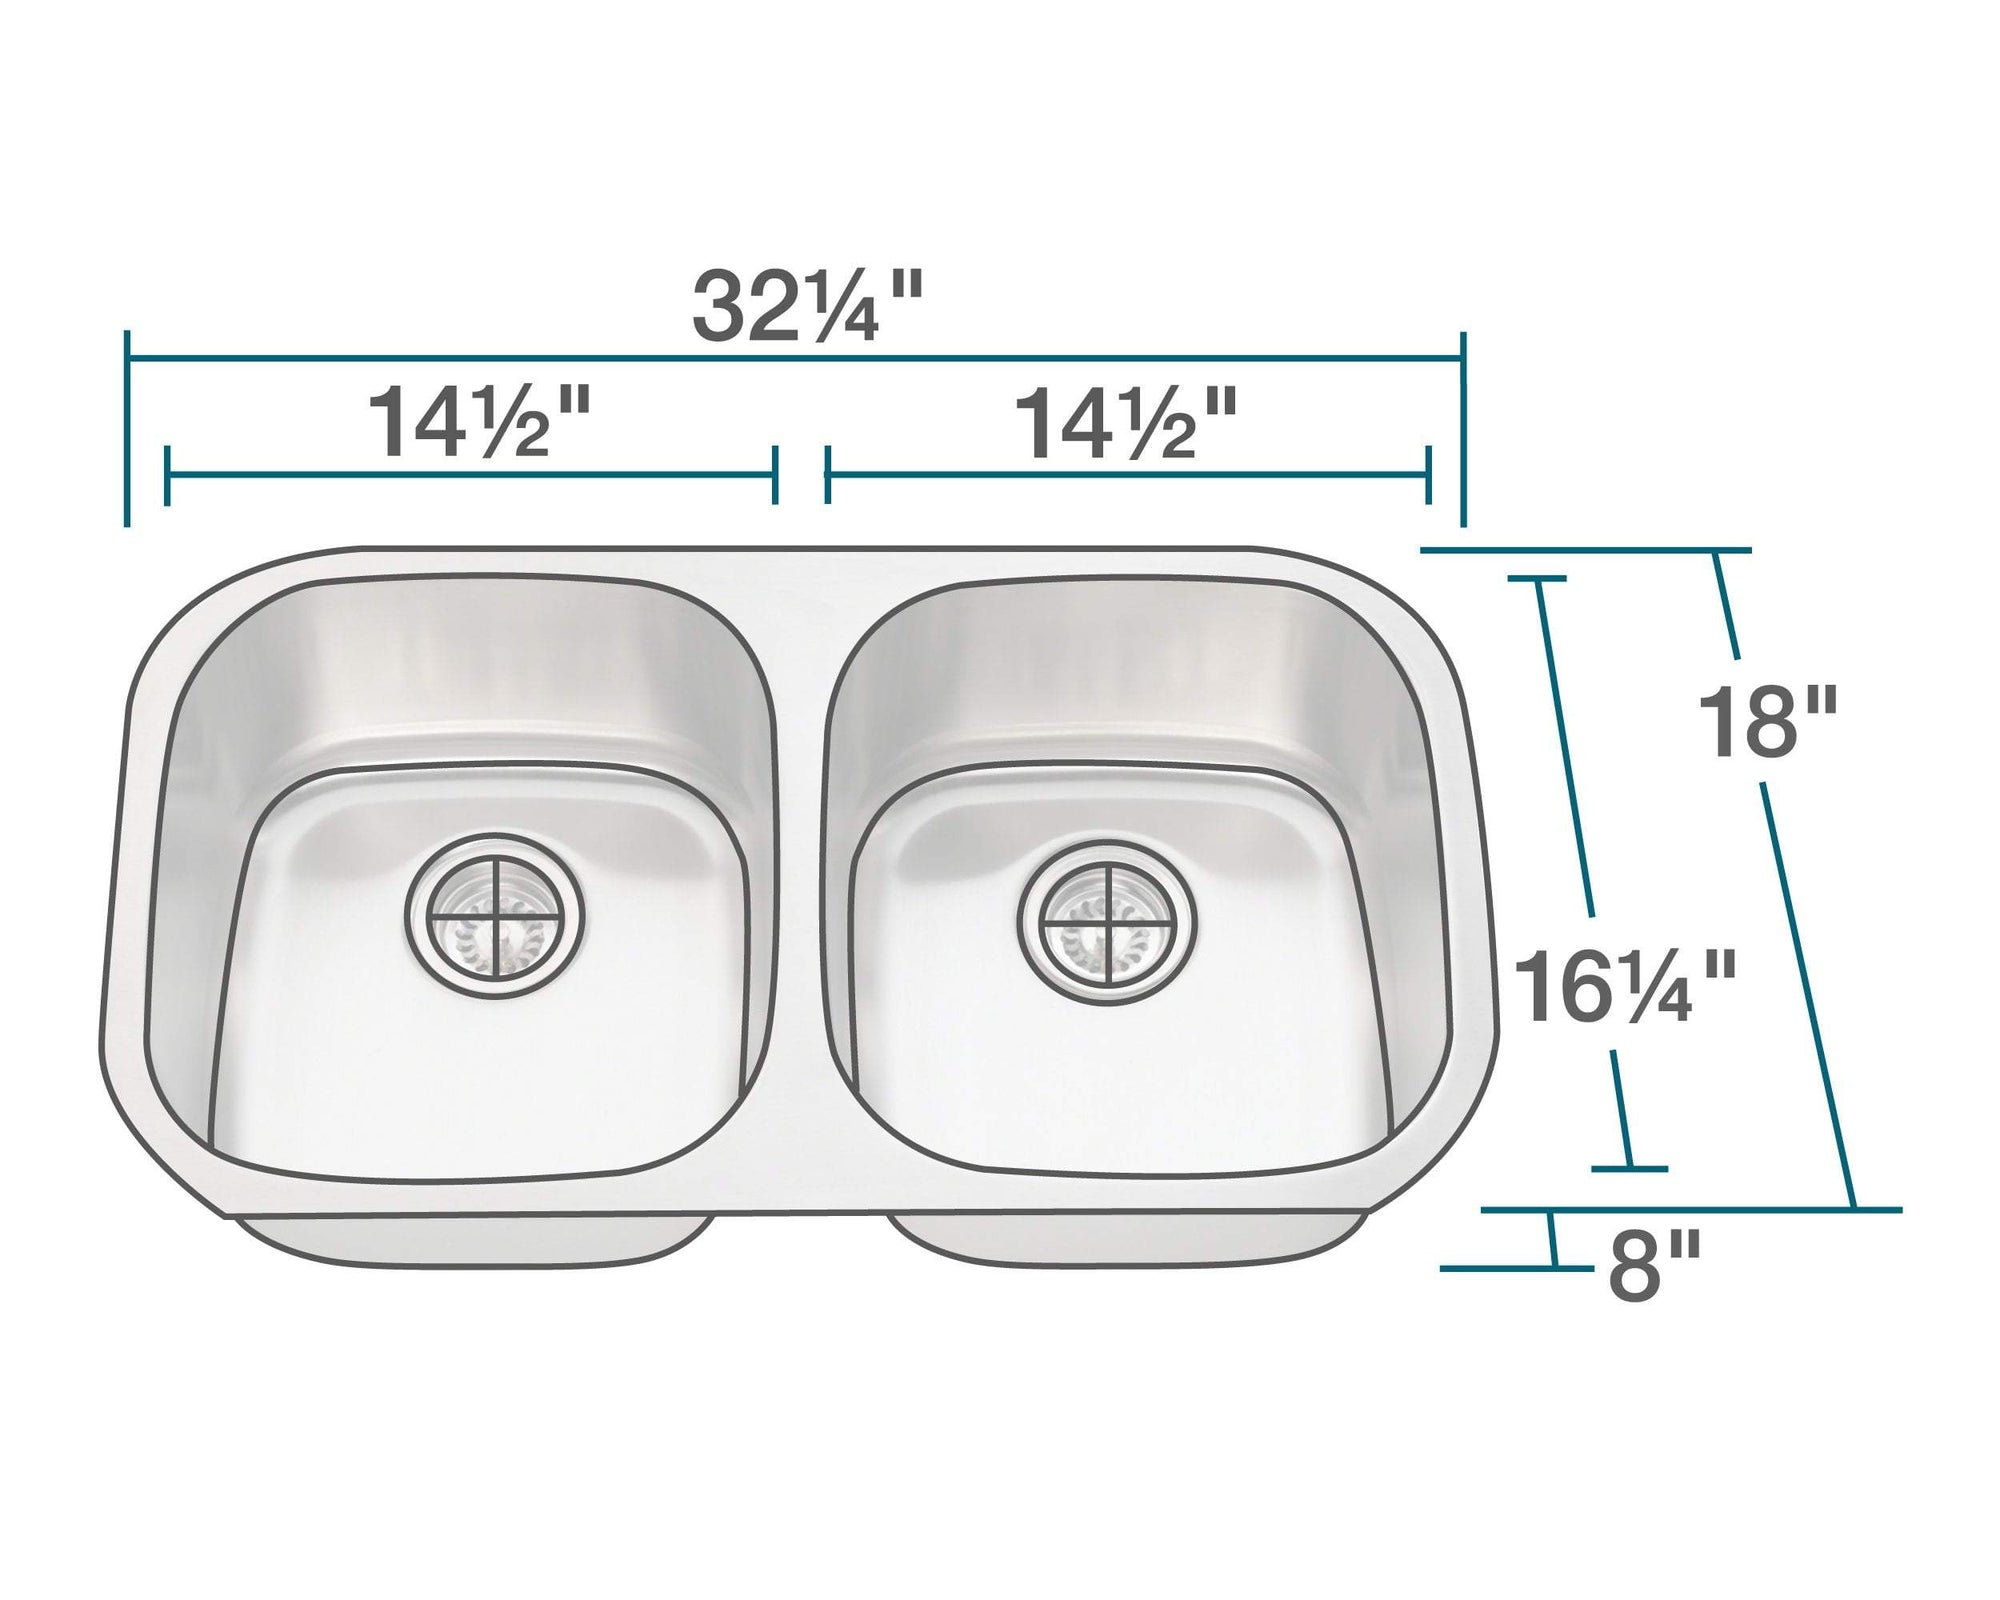 P205-18 Double Bowl Stainless Steel Sink